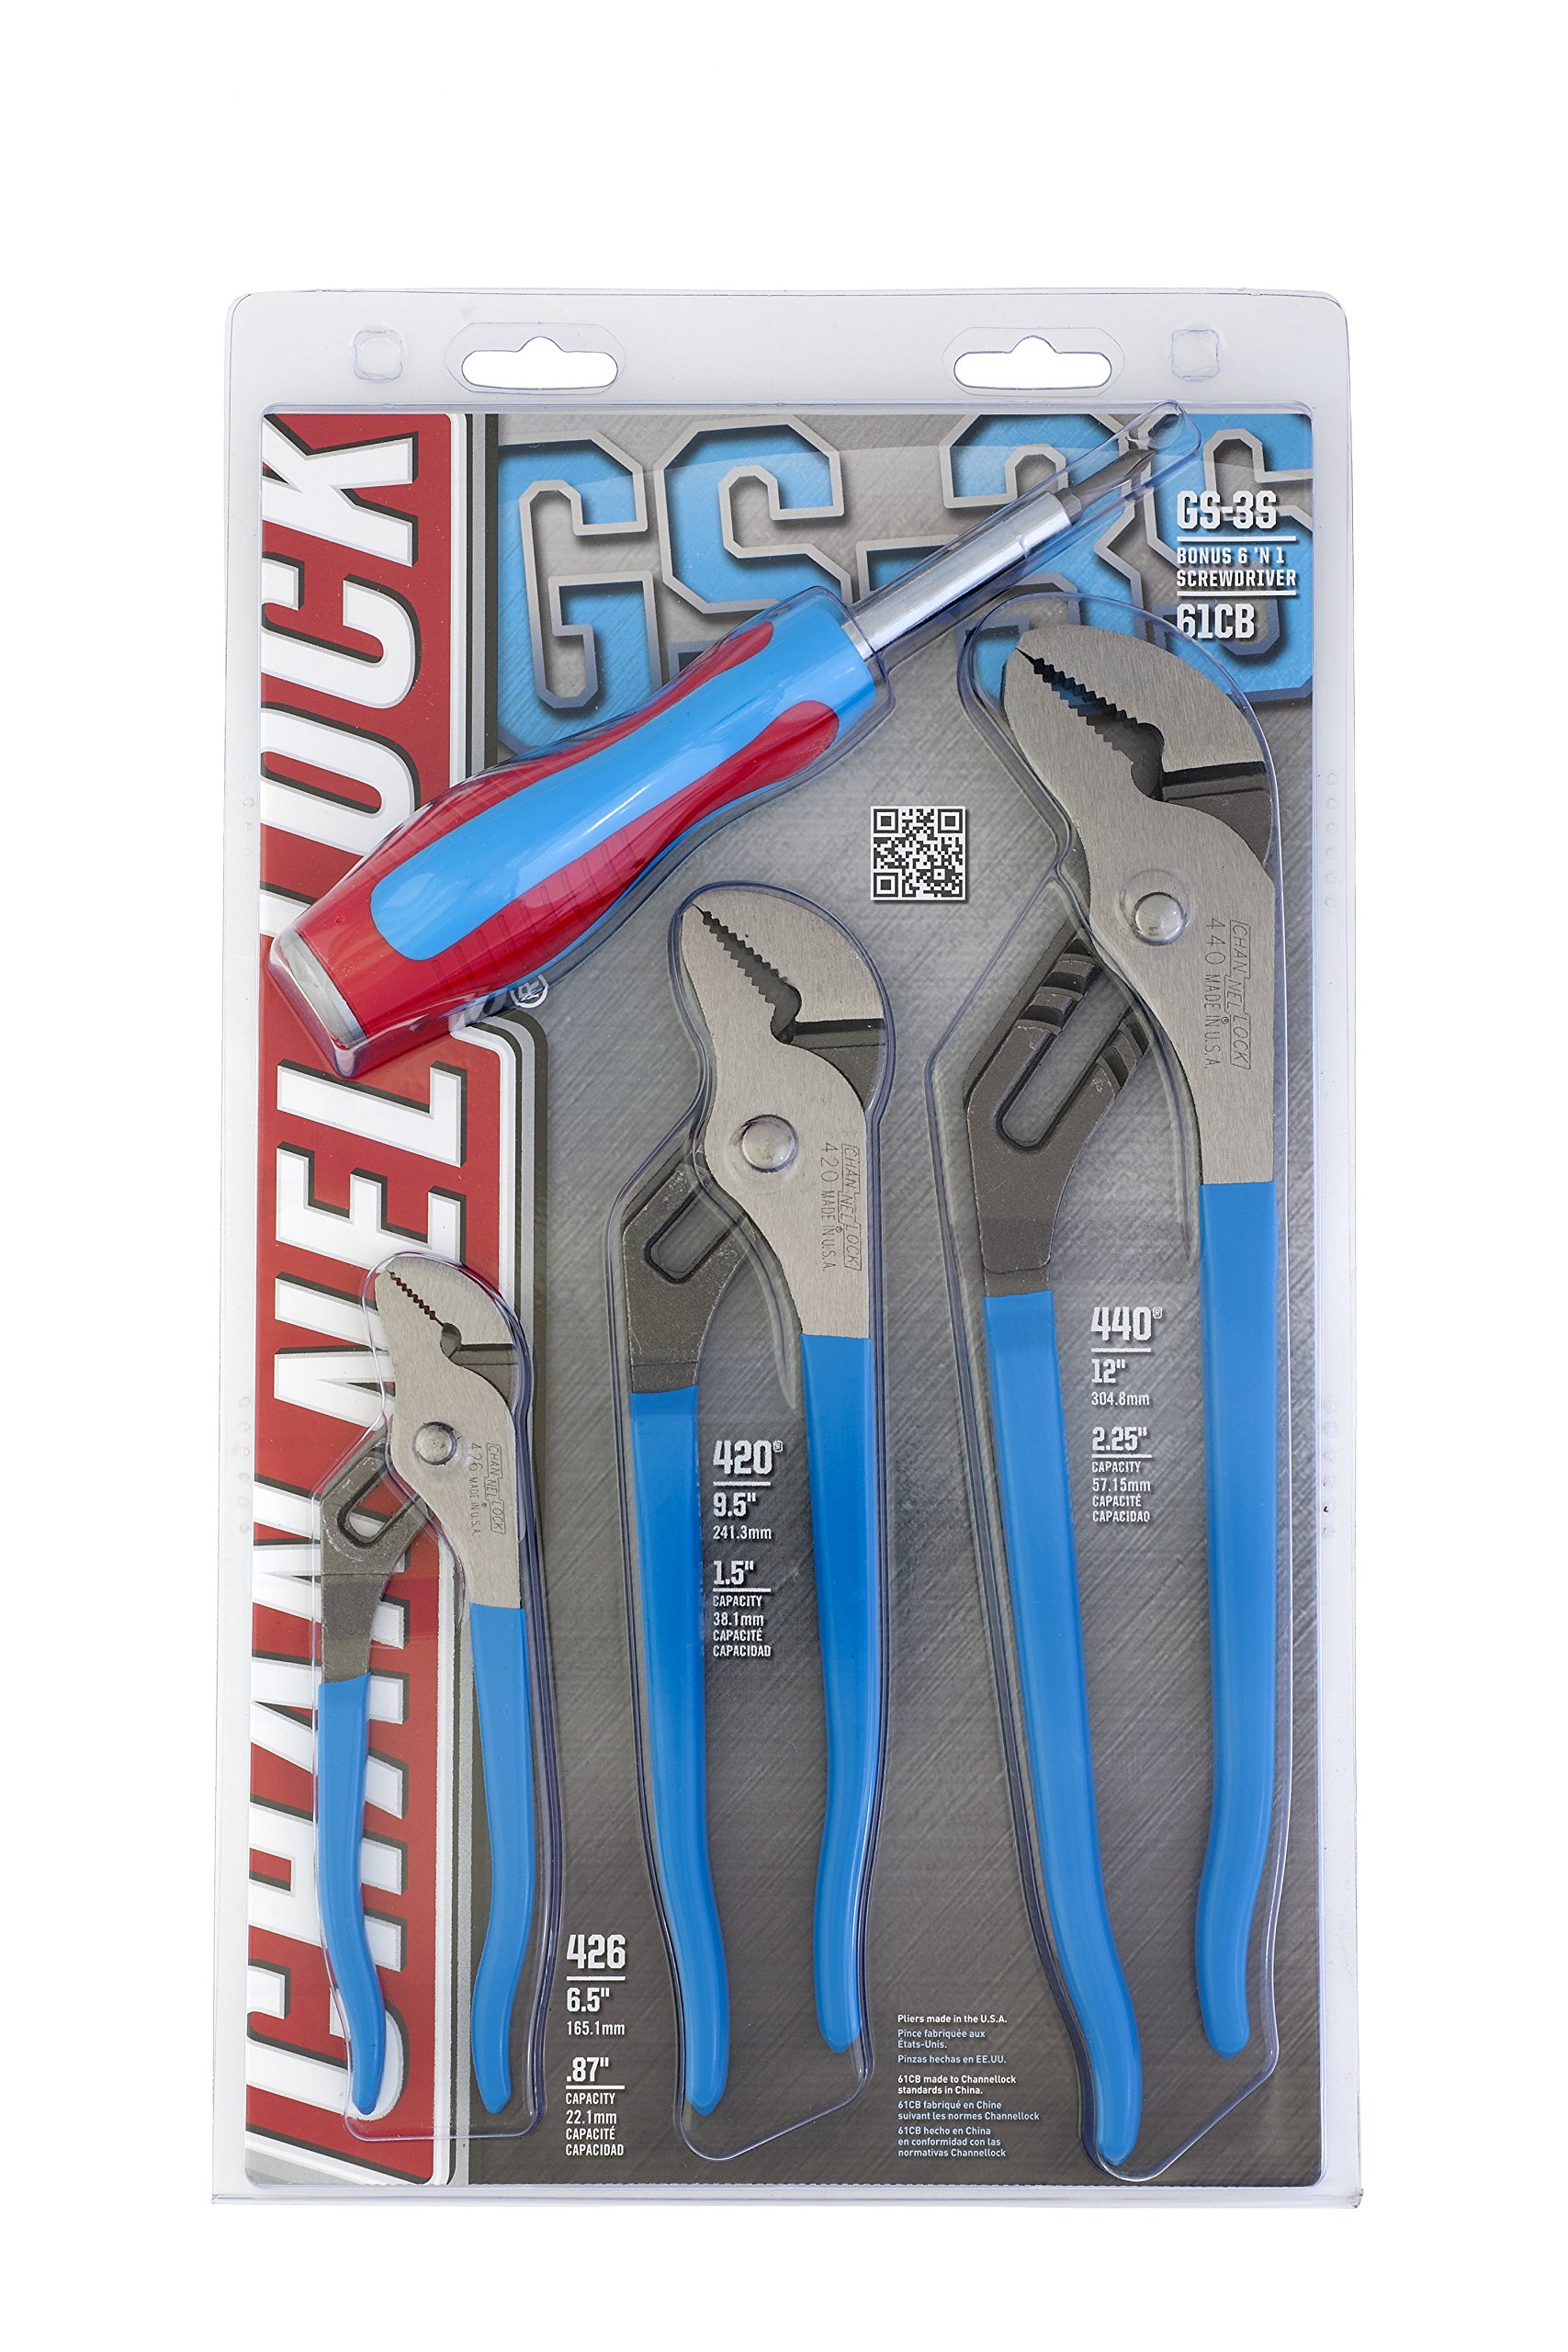 Channellock GS-3SA 4-Piece Tongue and Groove Plier Set